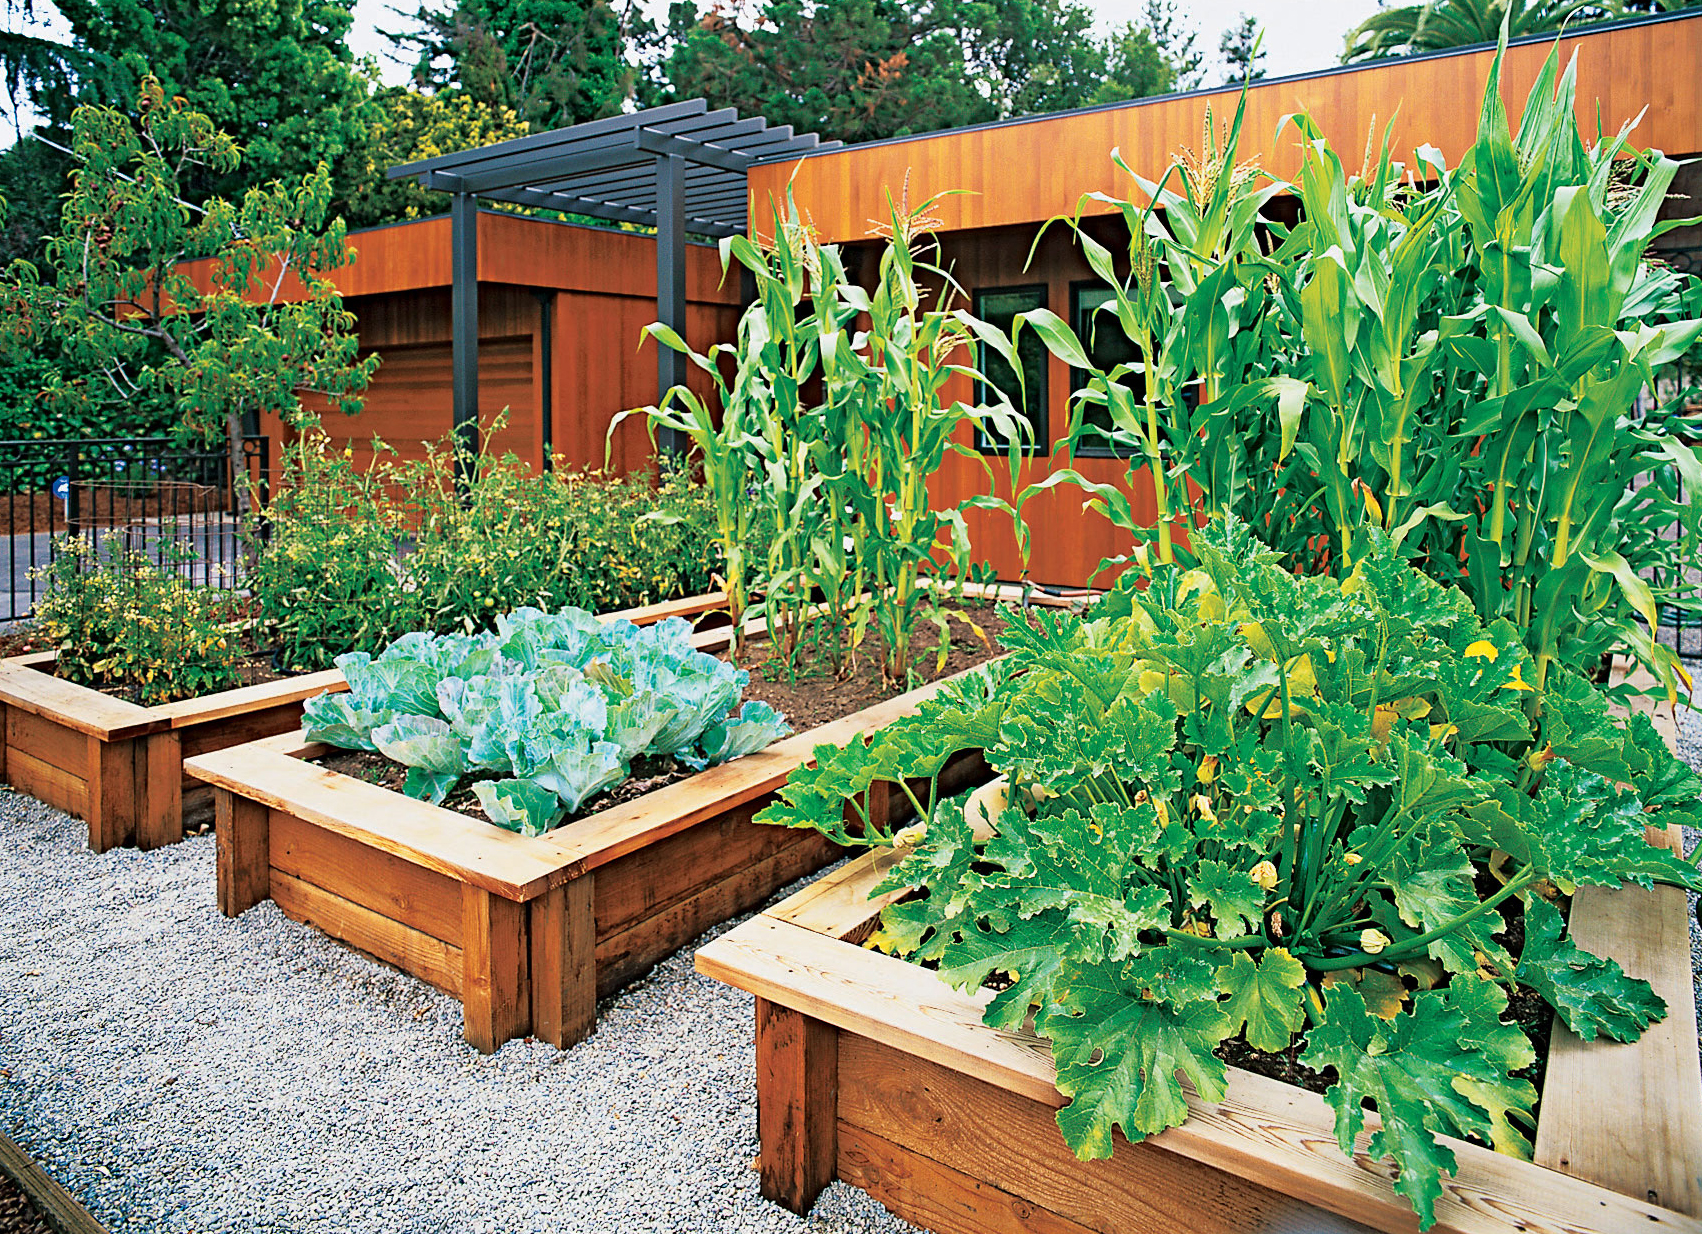 Attractive See How Corn, Squash, And Other Crops Look Great In A Front Yard Vegetable  Garden   Sunset Magazine